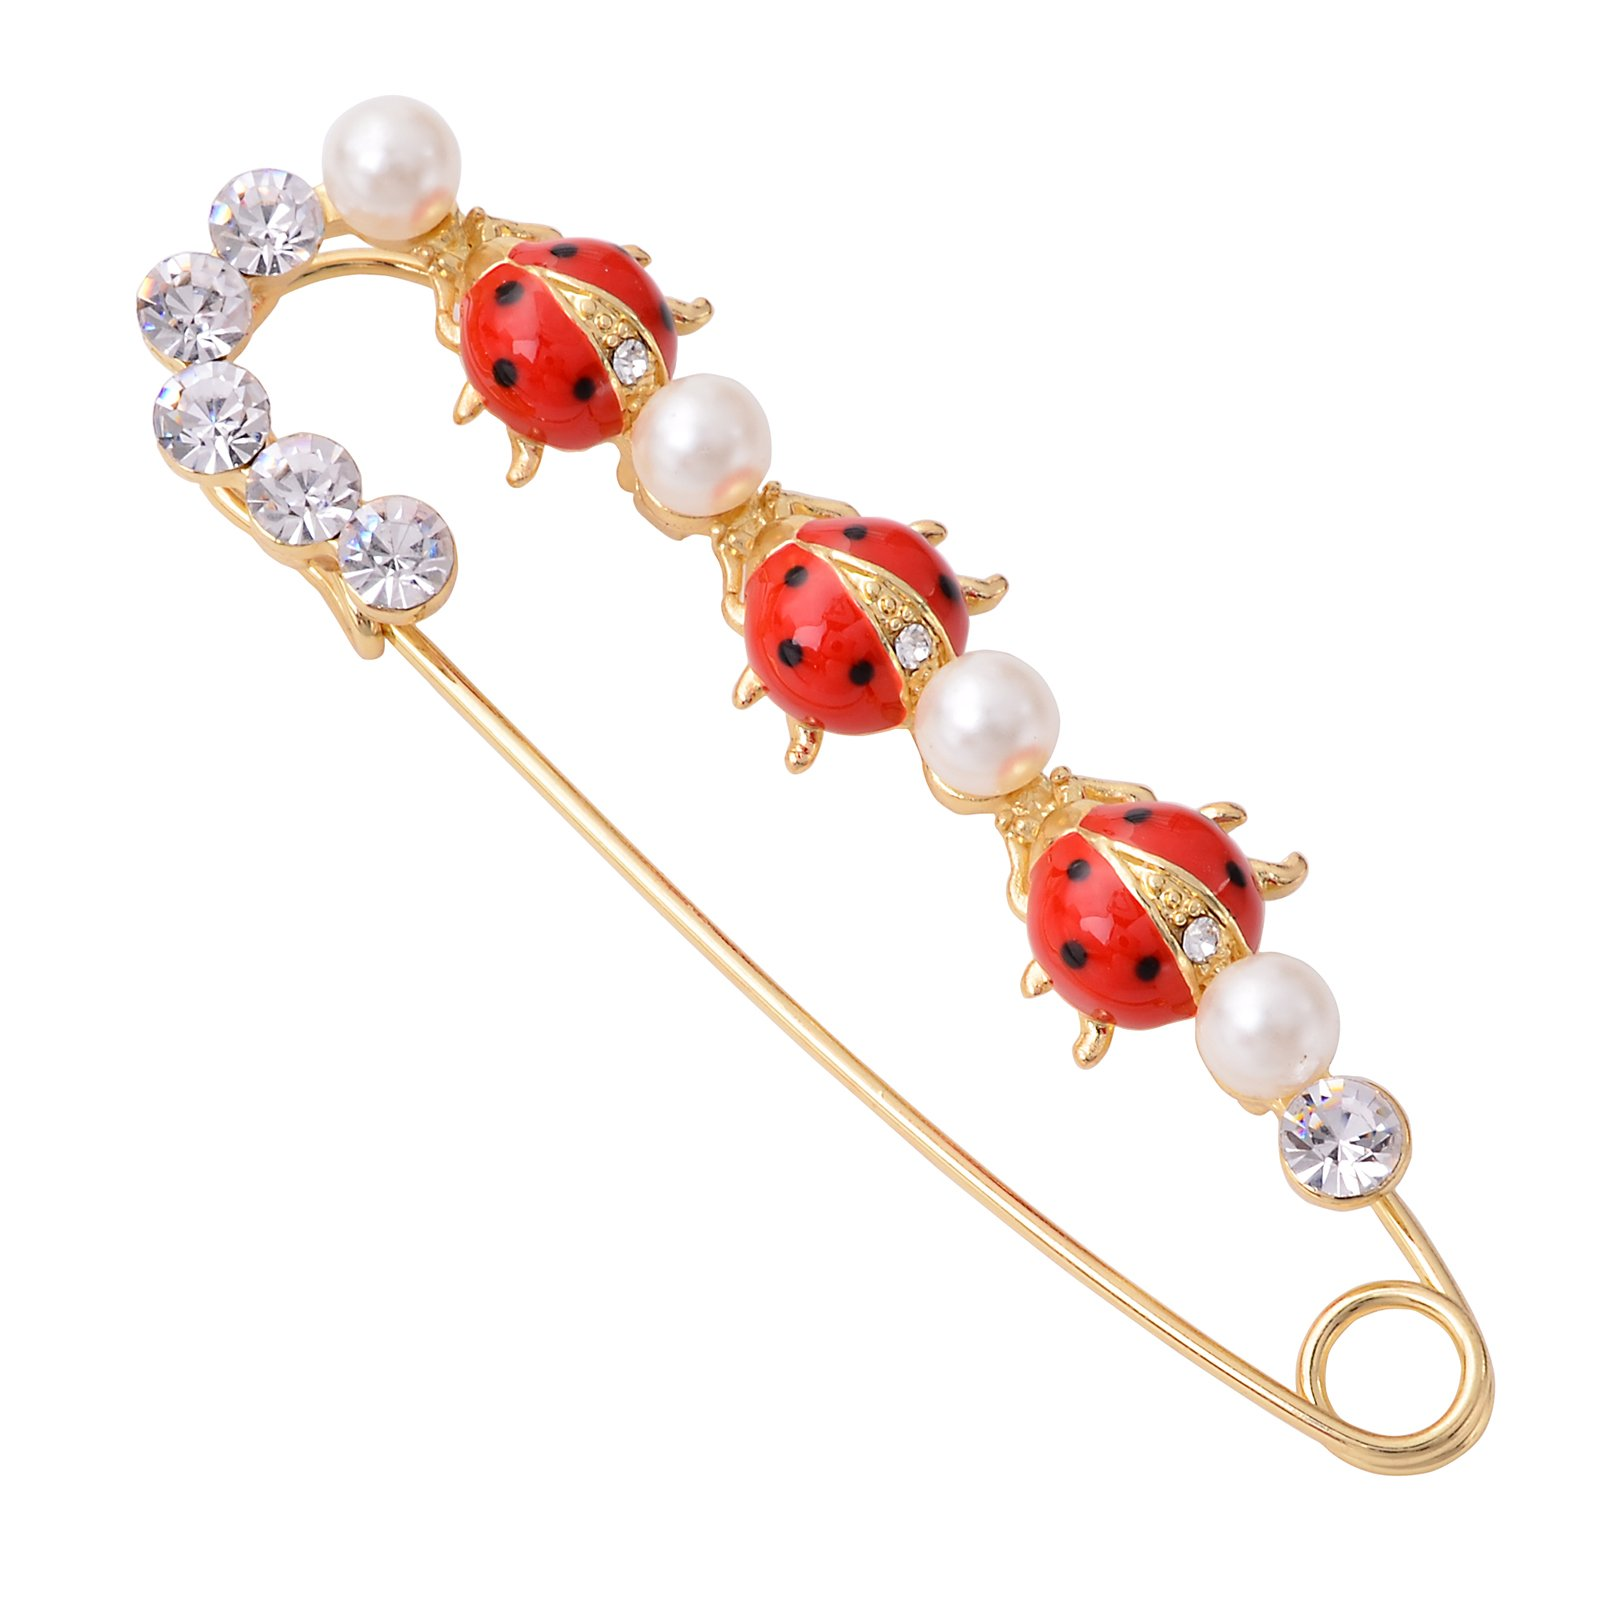 OBONNIE Gold Plated Red Enamel Crystal Insect Ladybugs Pin Brooch Lapel Pin Large Safety Pin